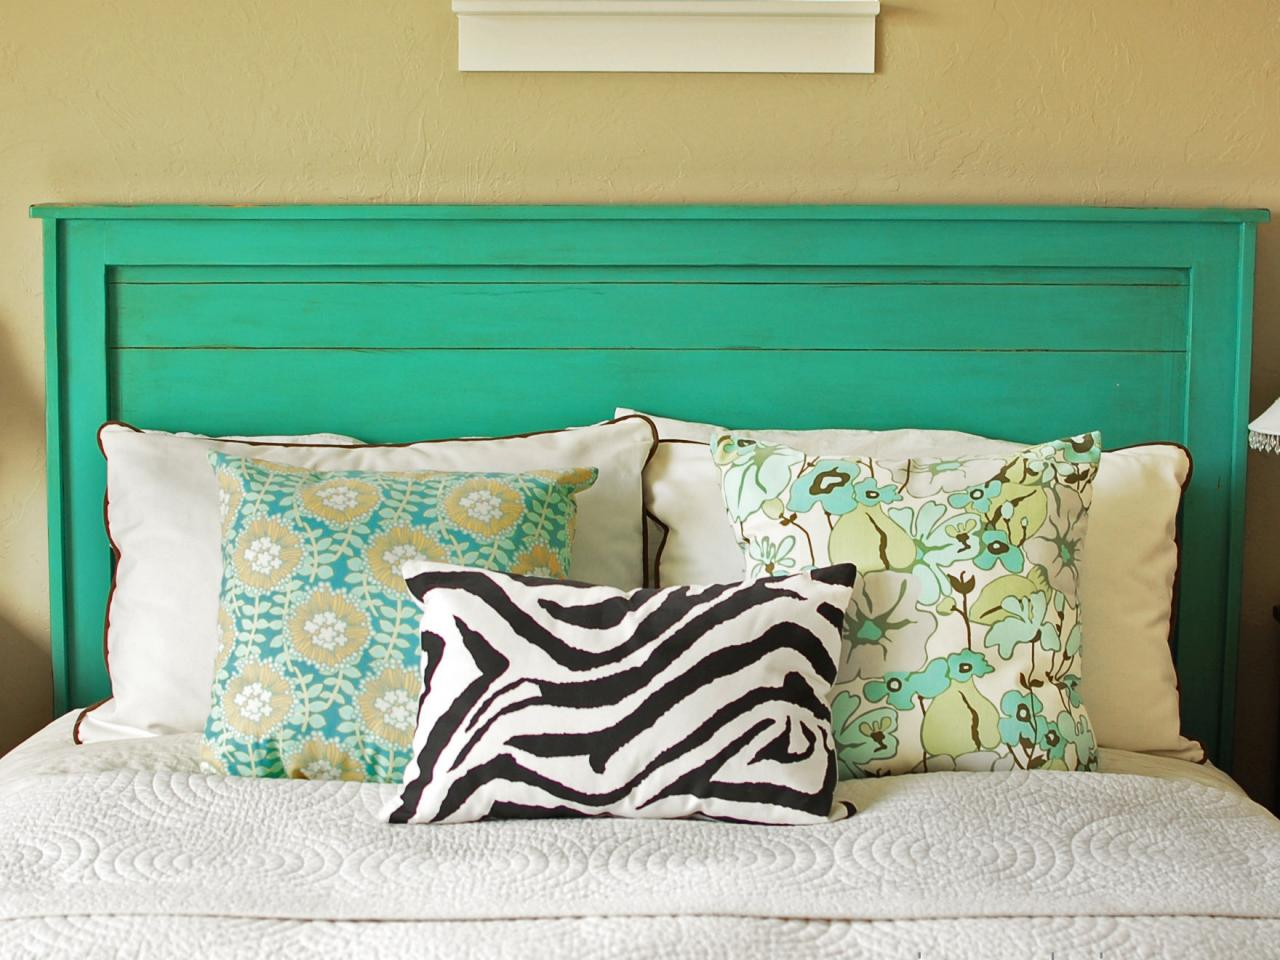 Gorgeous diy headboard ideas that are easy and cheap for Different headboards for beds